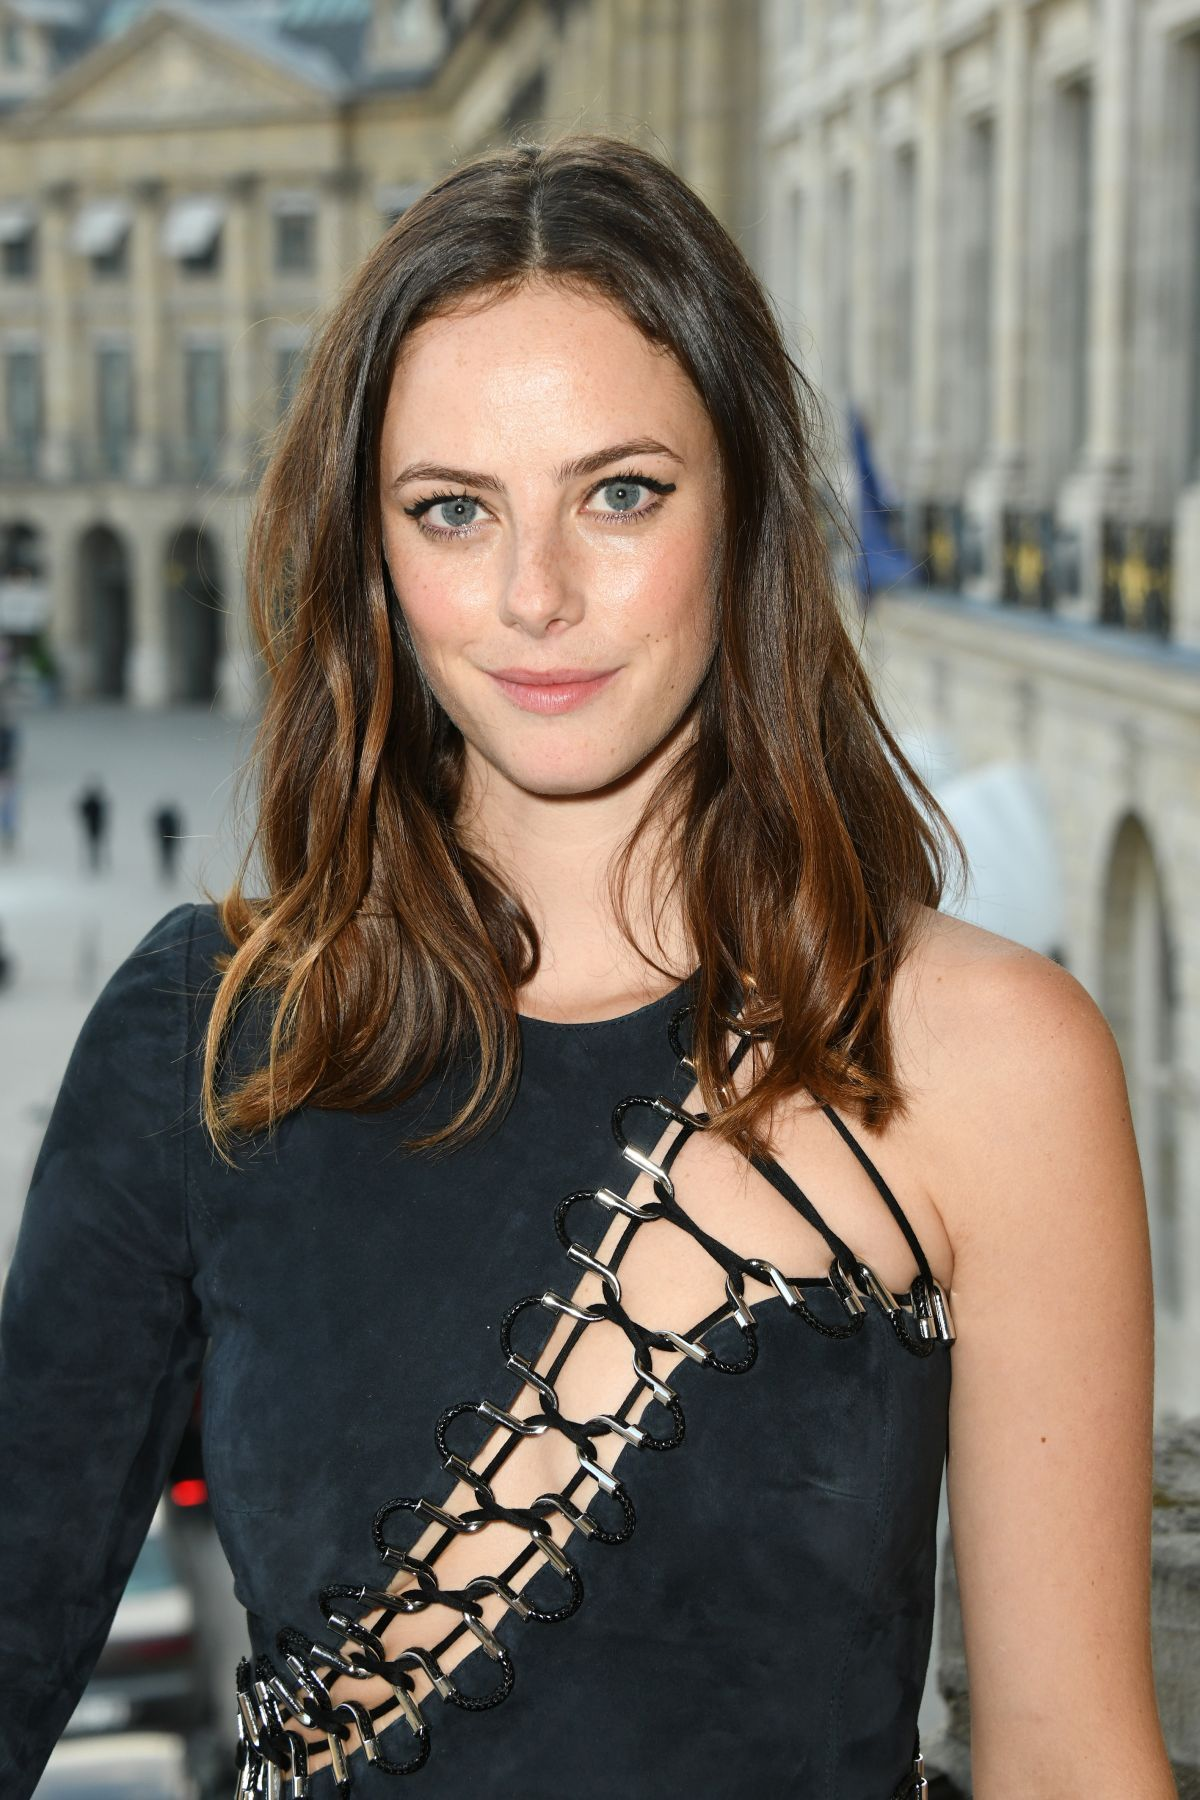 Kaya Scodelario nudes (66 foto and video), Sexy, Is a cute, Boobs, braless 2017